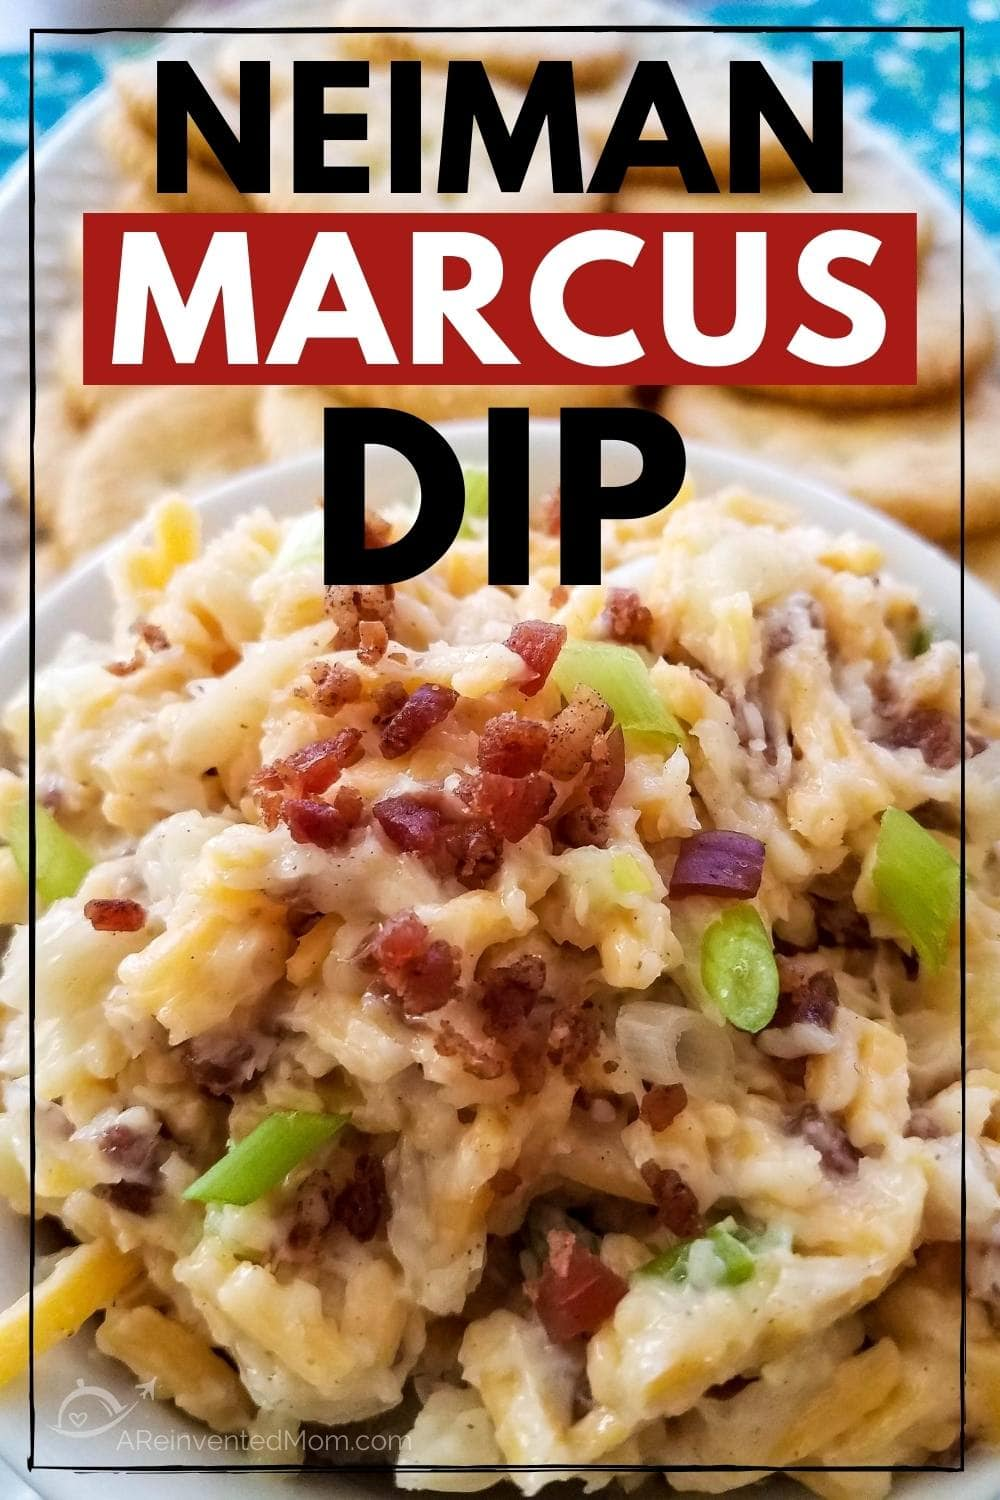 top view of neiman marcus dip with text overlay and ritz crackers in the background